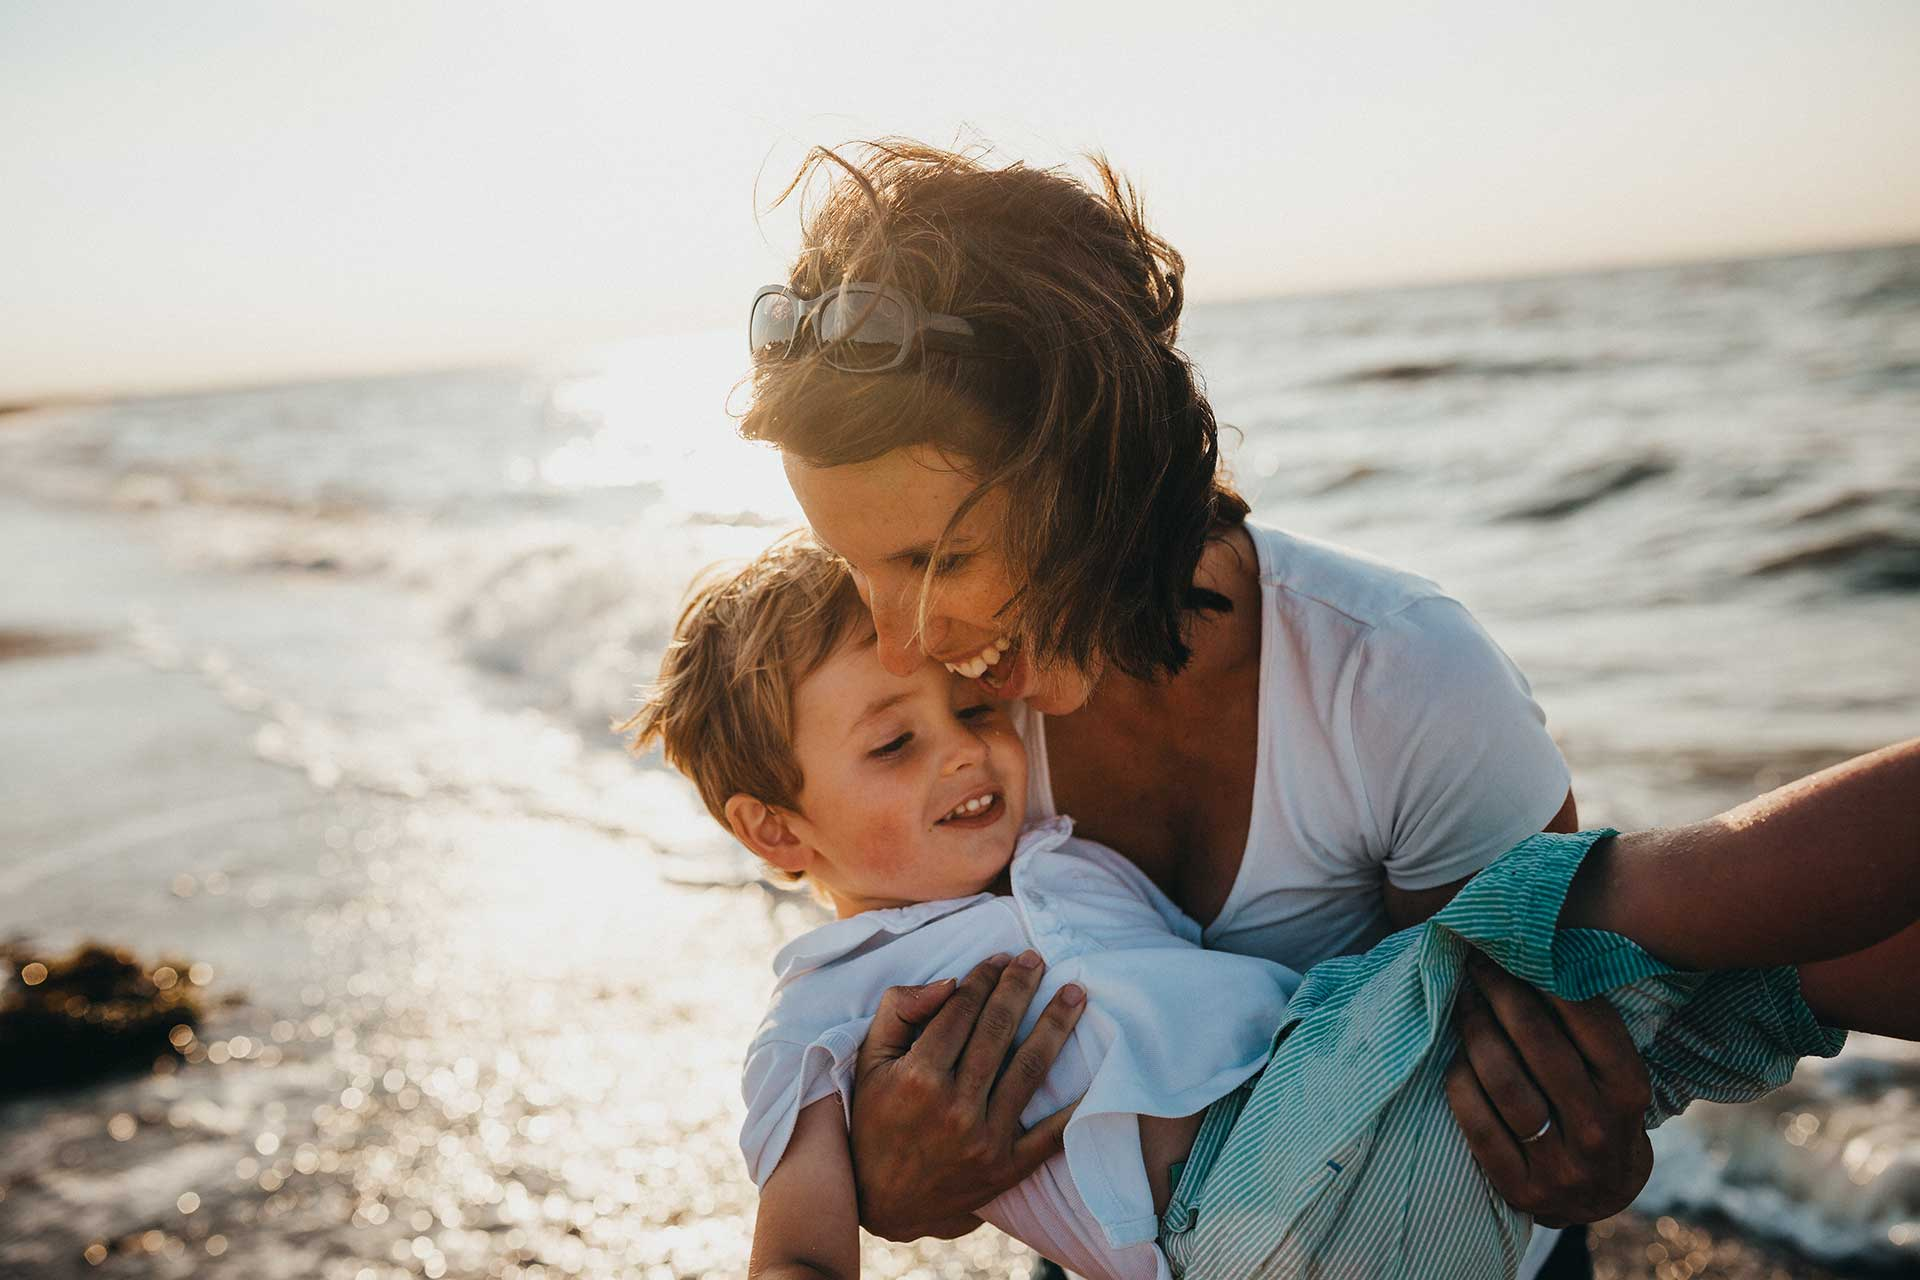 mother-and-son-at-beach